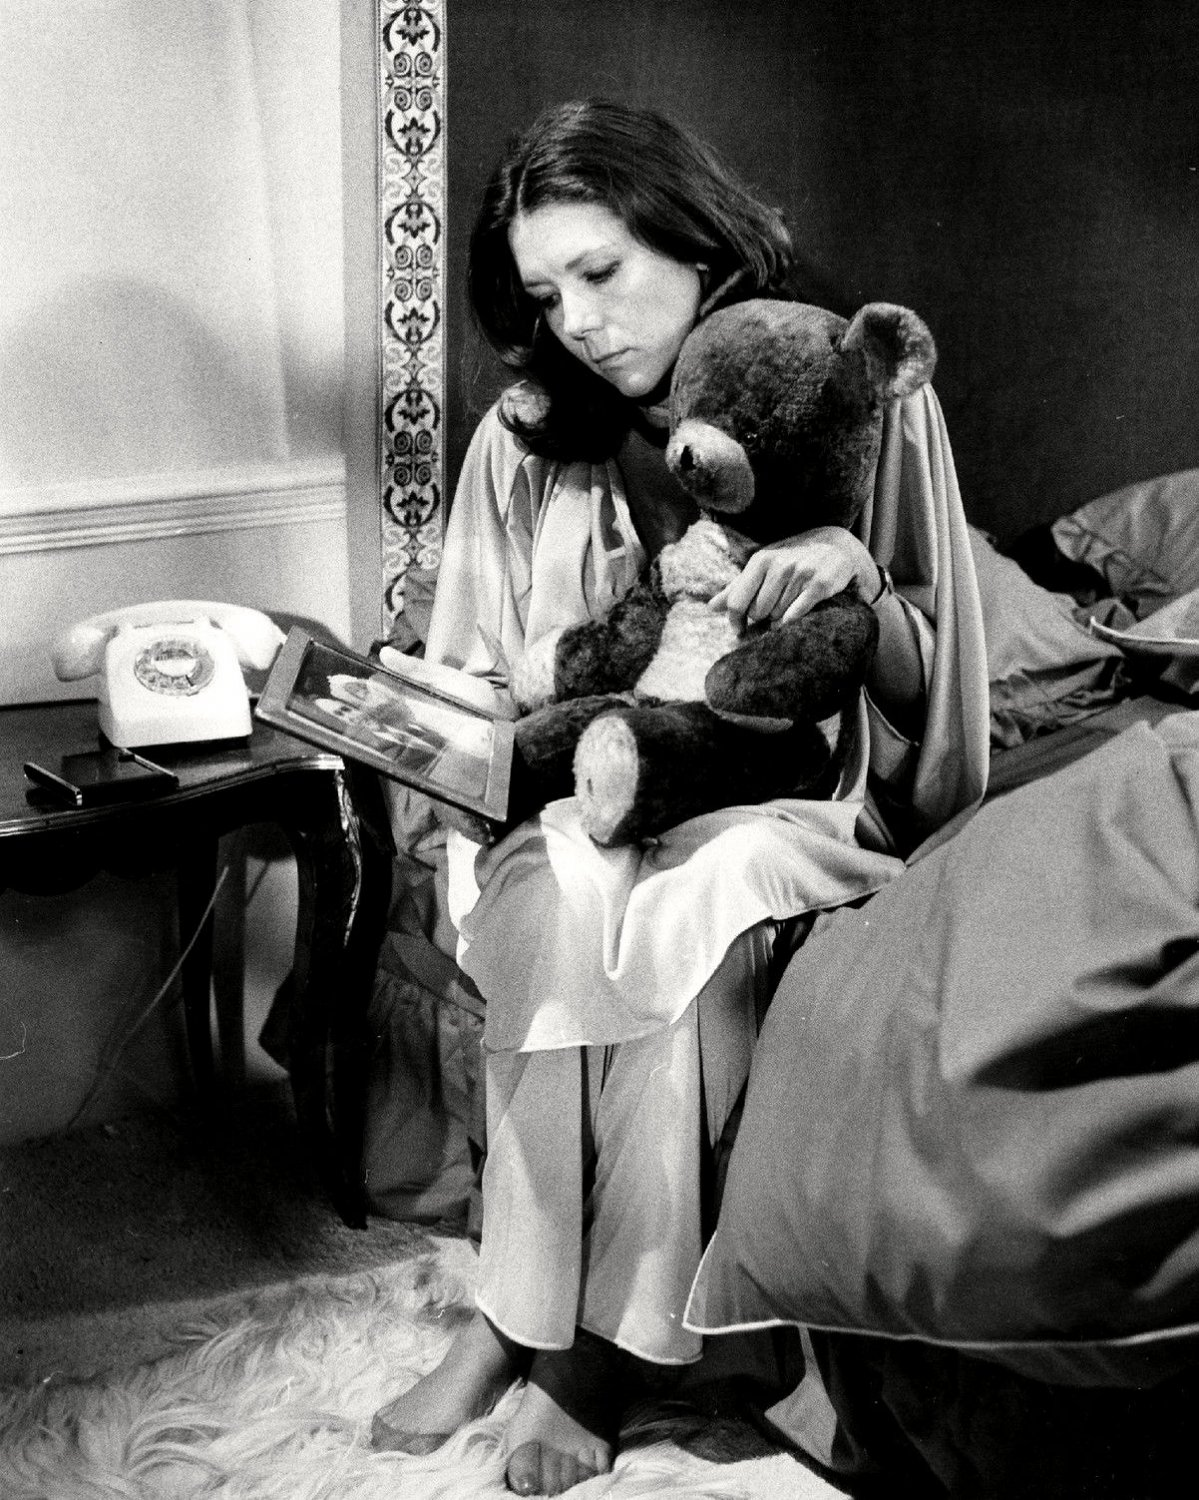 ACTRESS DIANA RIGG WITH A TEDDY BEAR - 8X10 PUBLICITY PHOTO (CC-118)